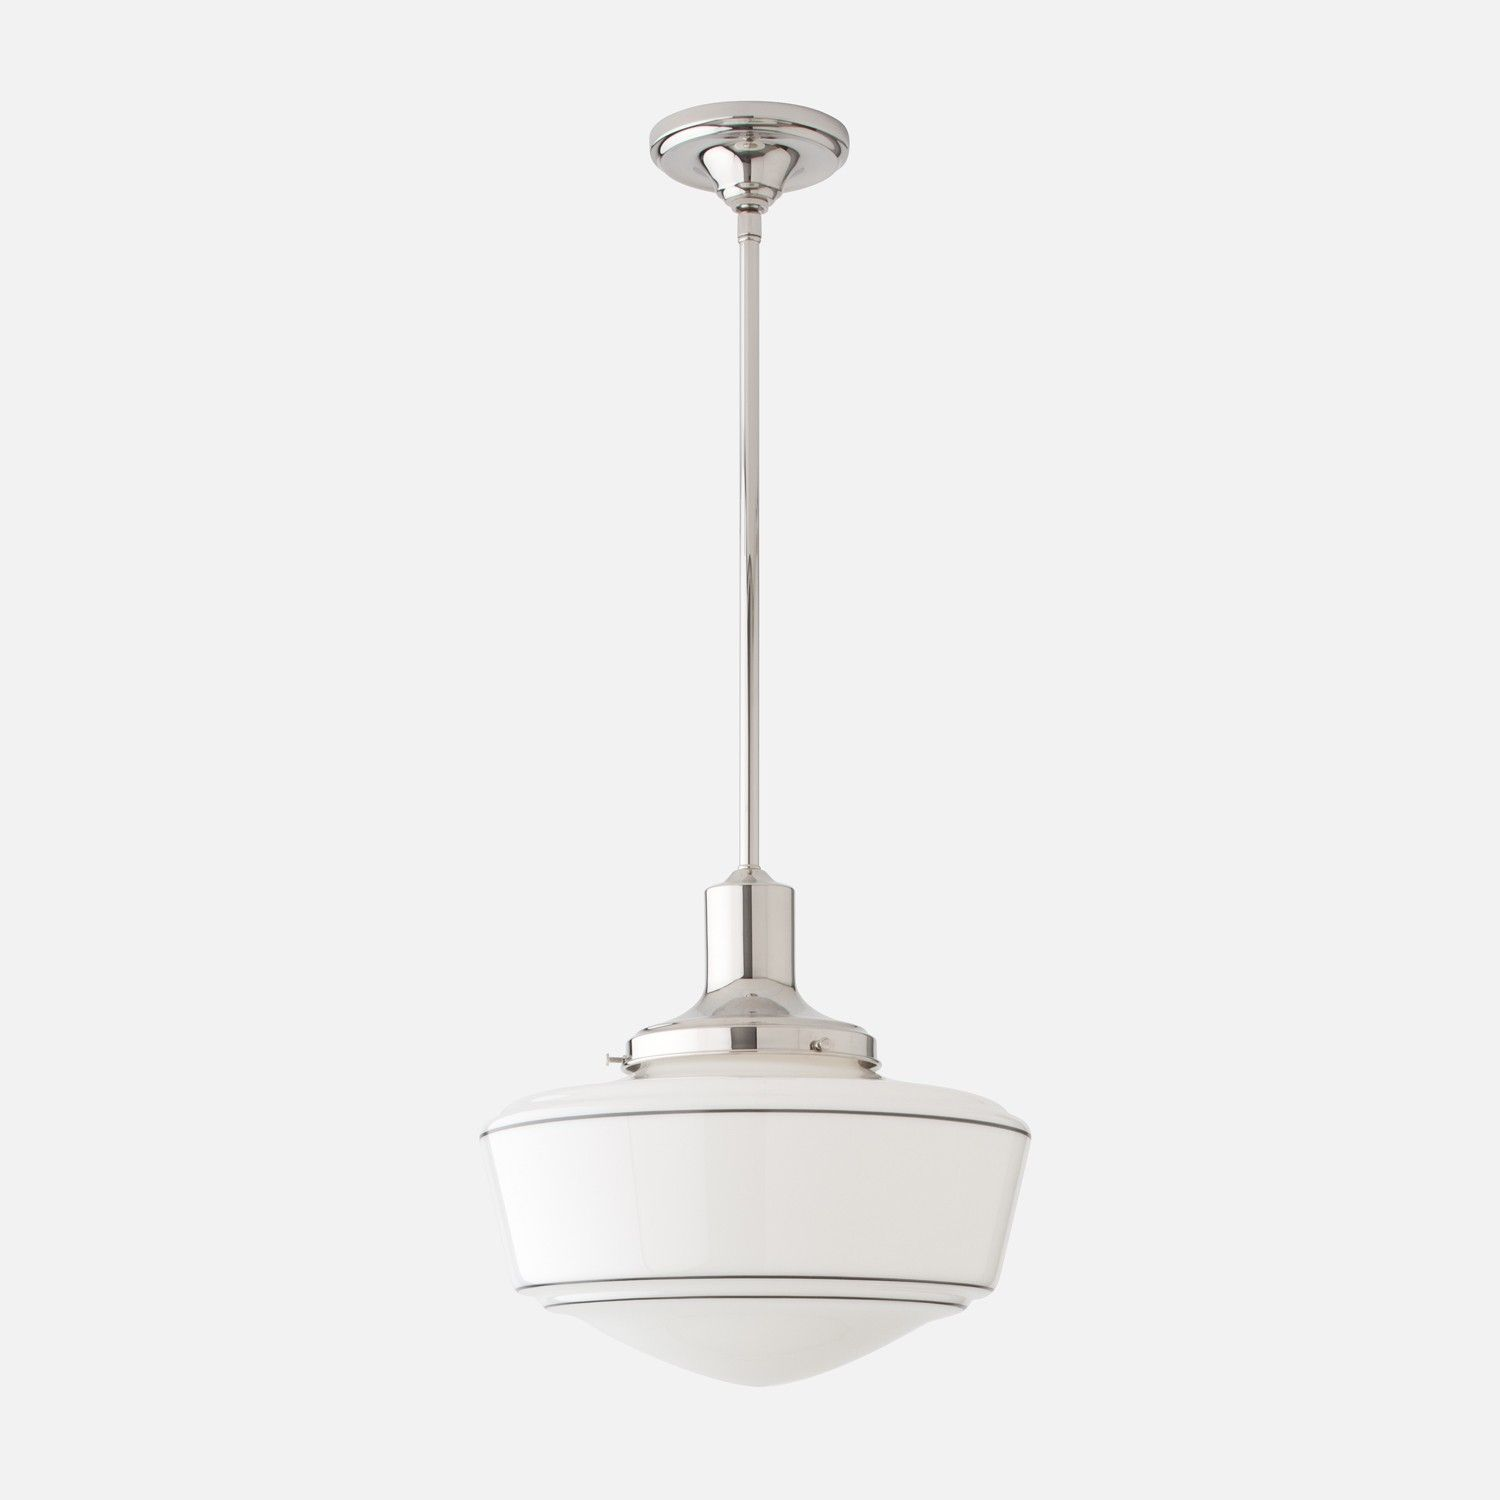 schoolhouse lighting ceiling capital collection light fixture pendant company